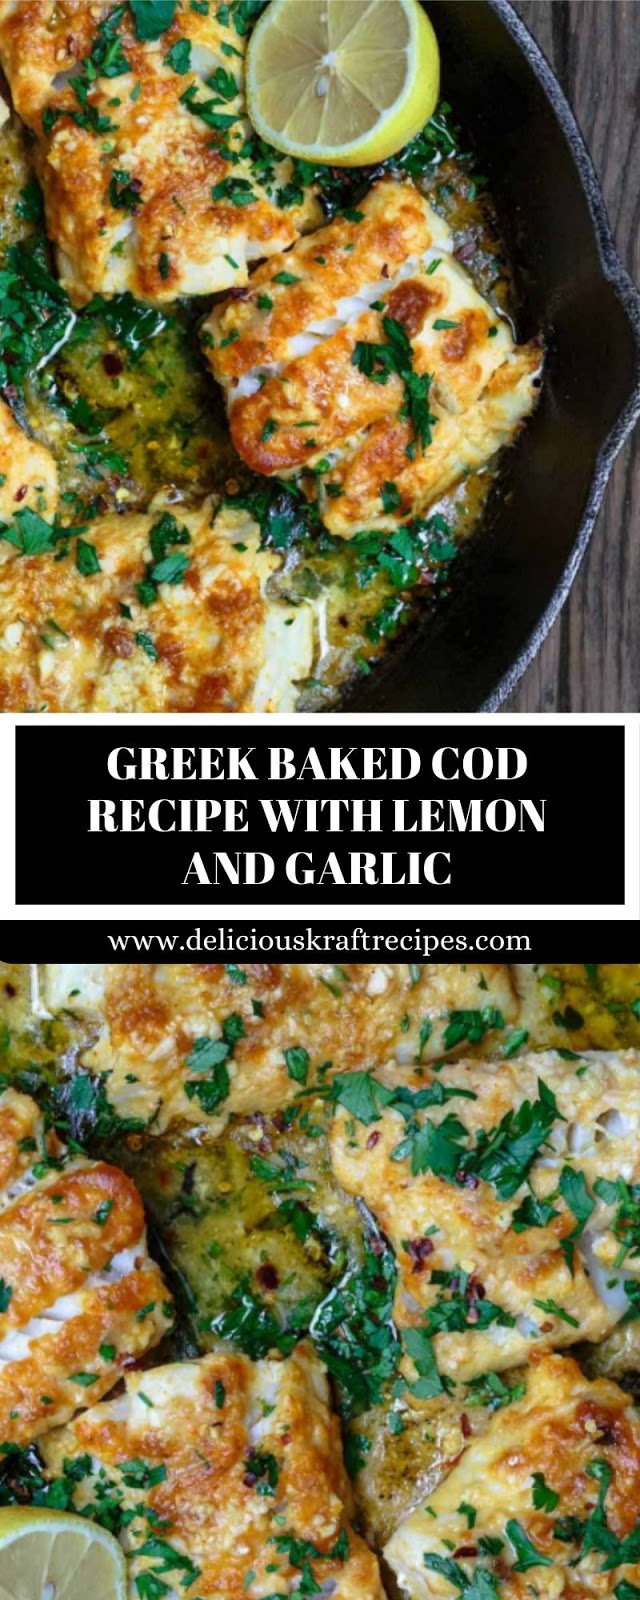 GREEK BAKED COD RECIPE WITH LEMON AND GARLIC